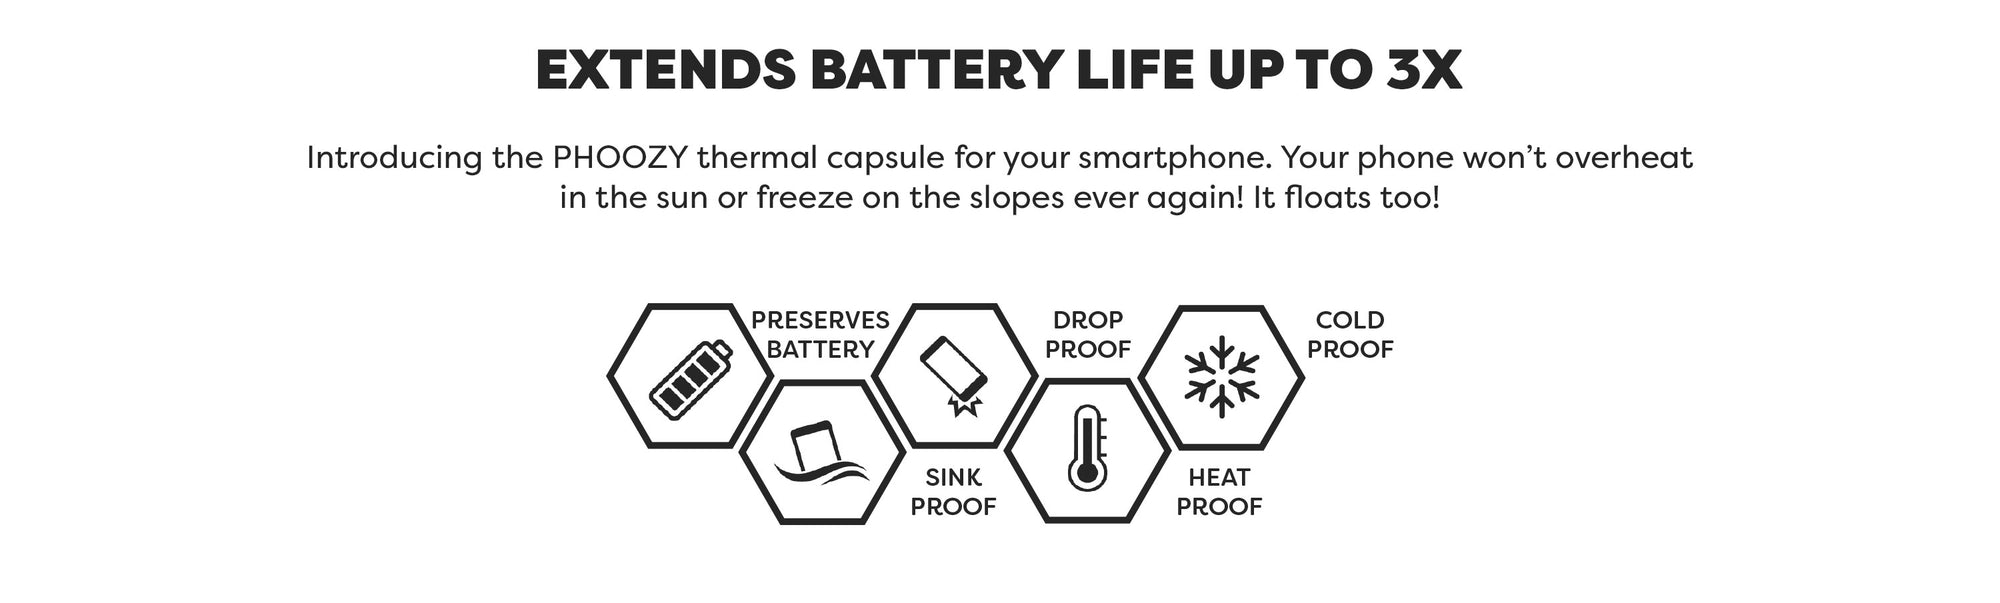 PHOOZY Thermal Capsules Extend Battery Life up to 3X  in cold conditions.